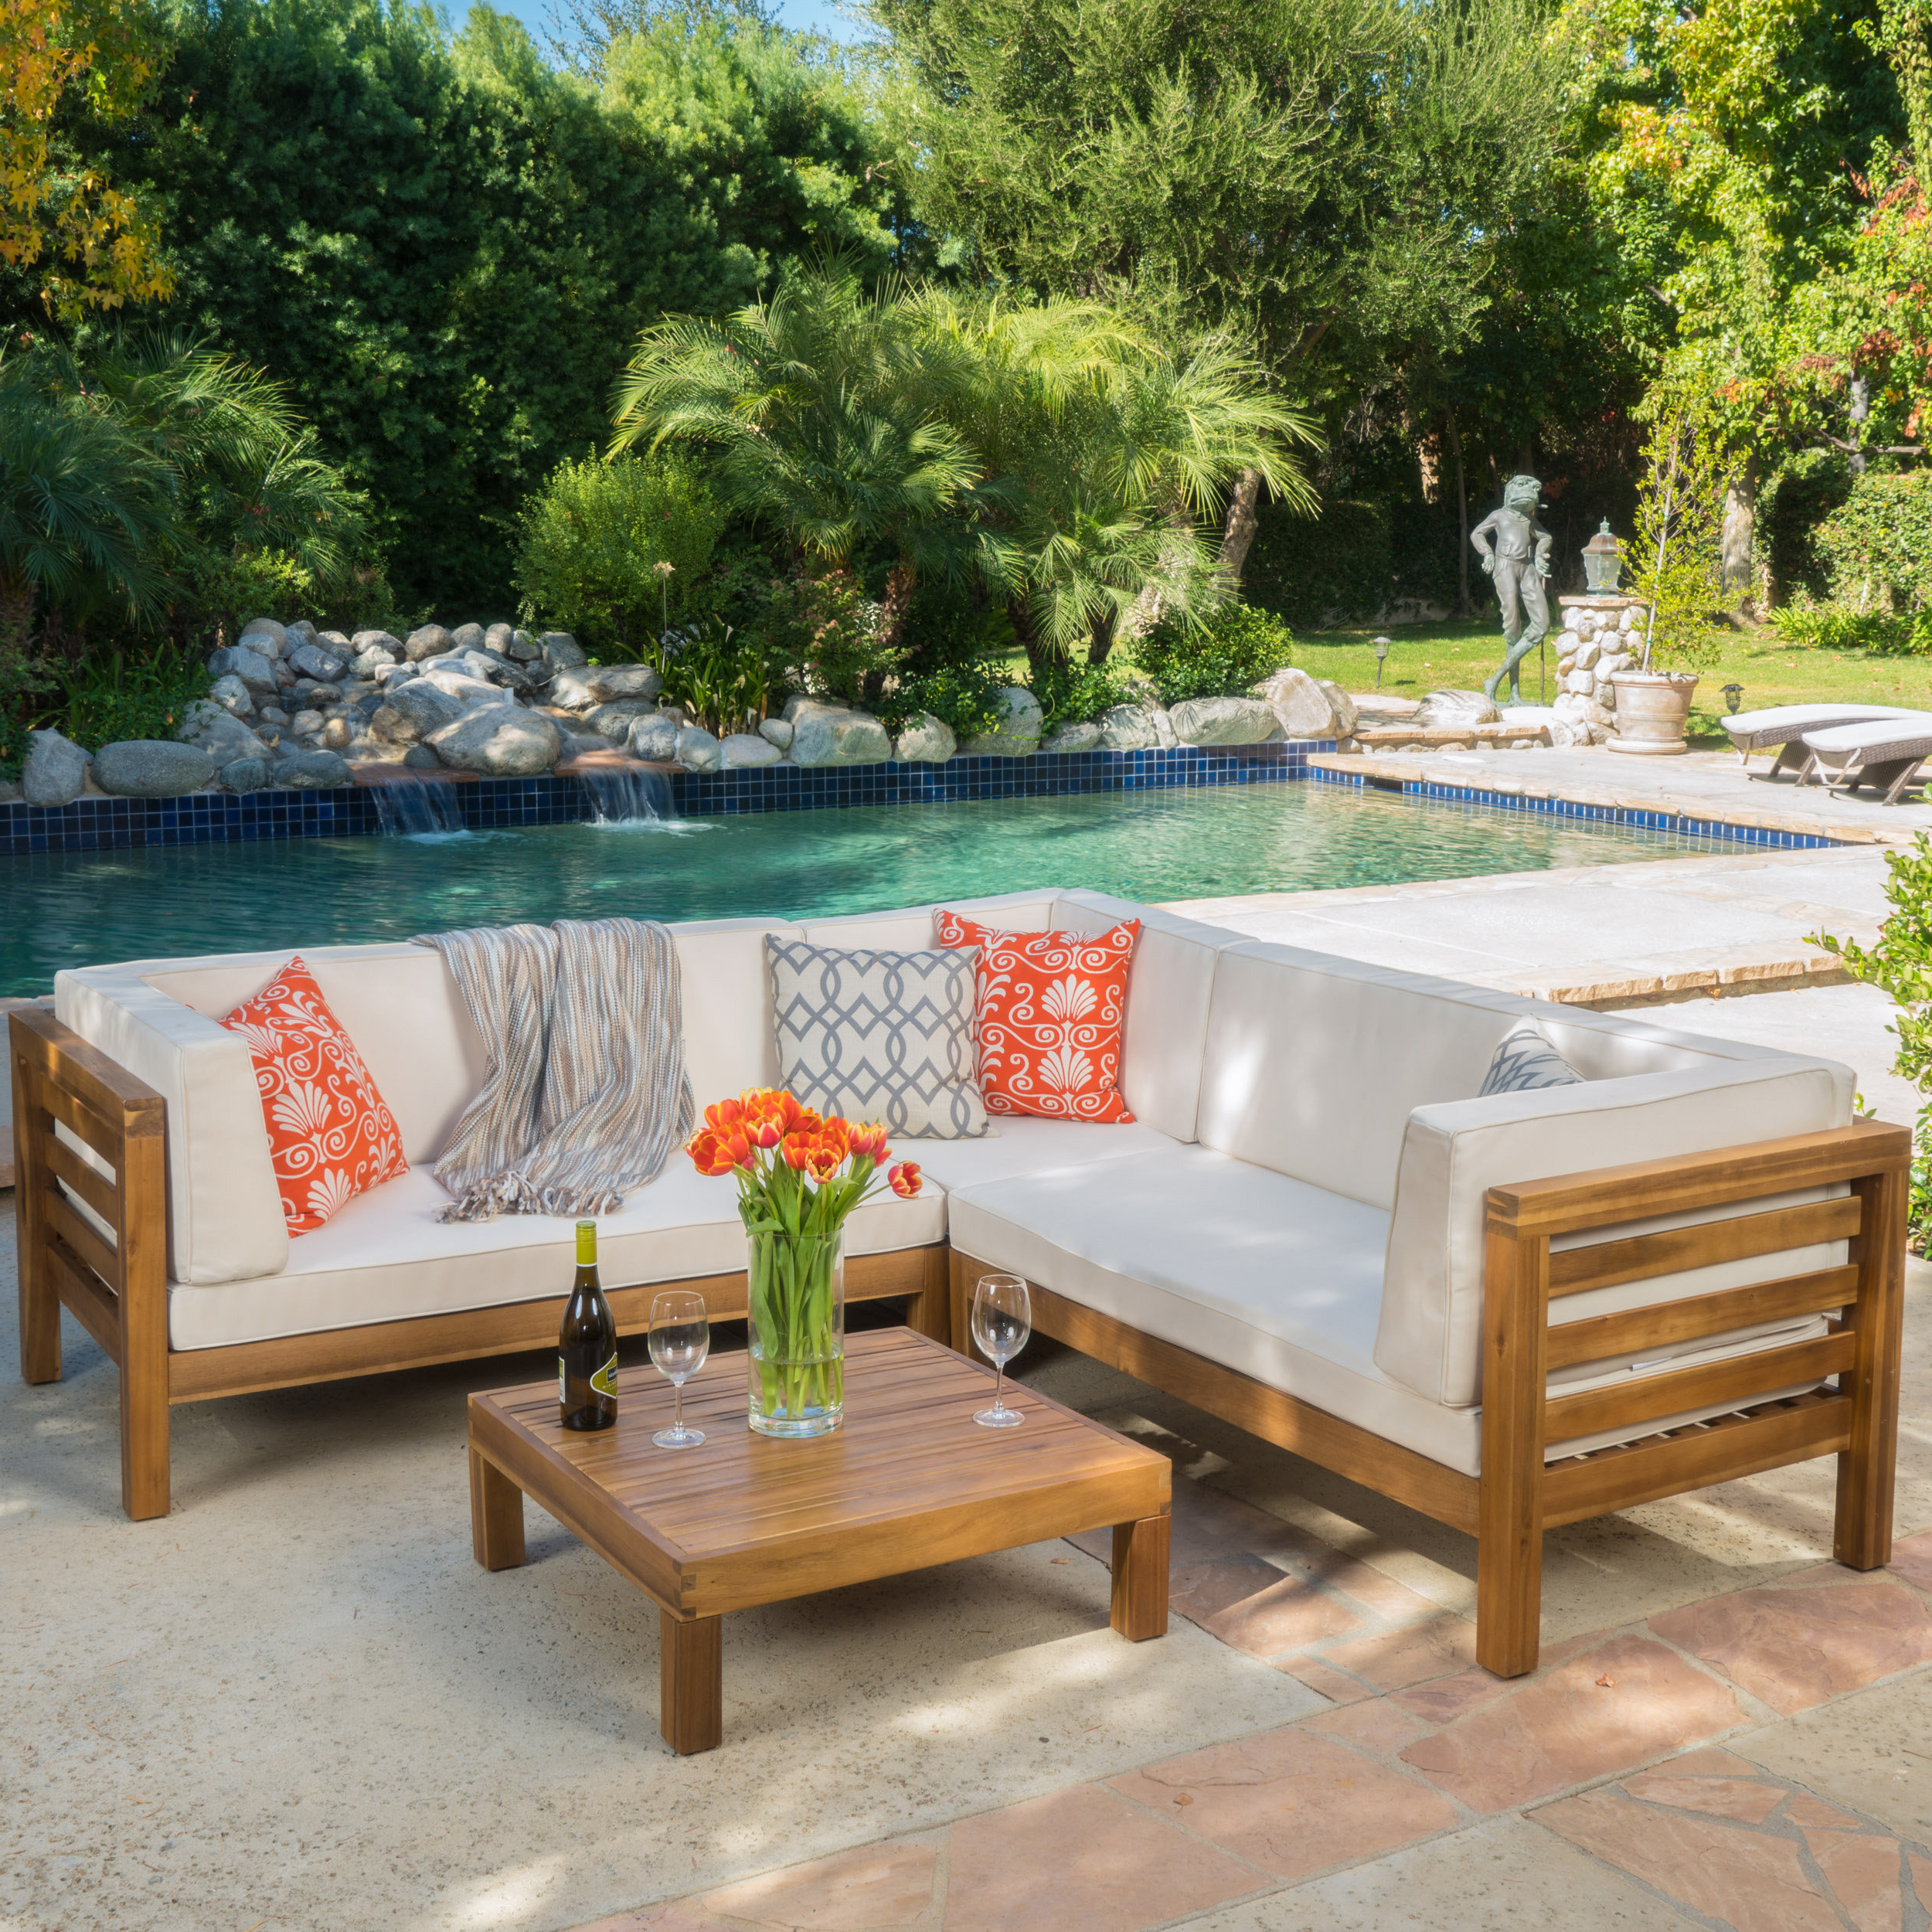 Farmhouse & Rustic Outdoor Sofa Sets (View 5 of 20)